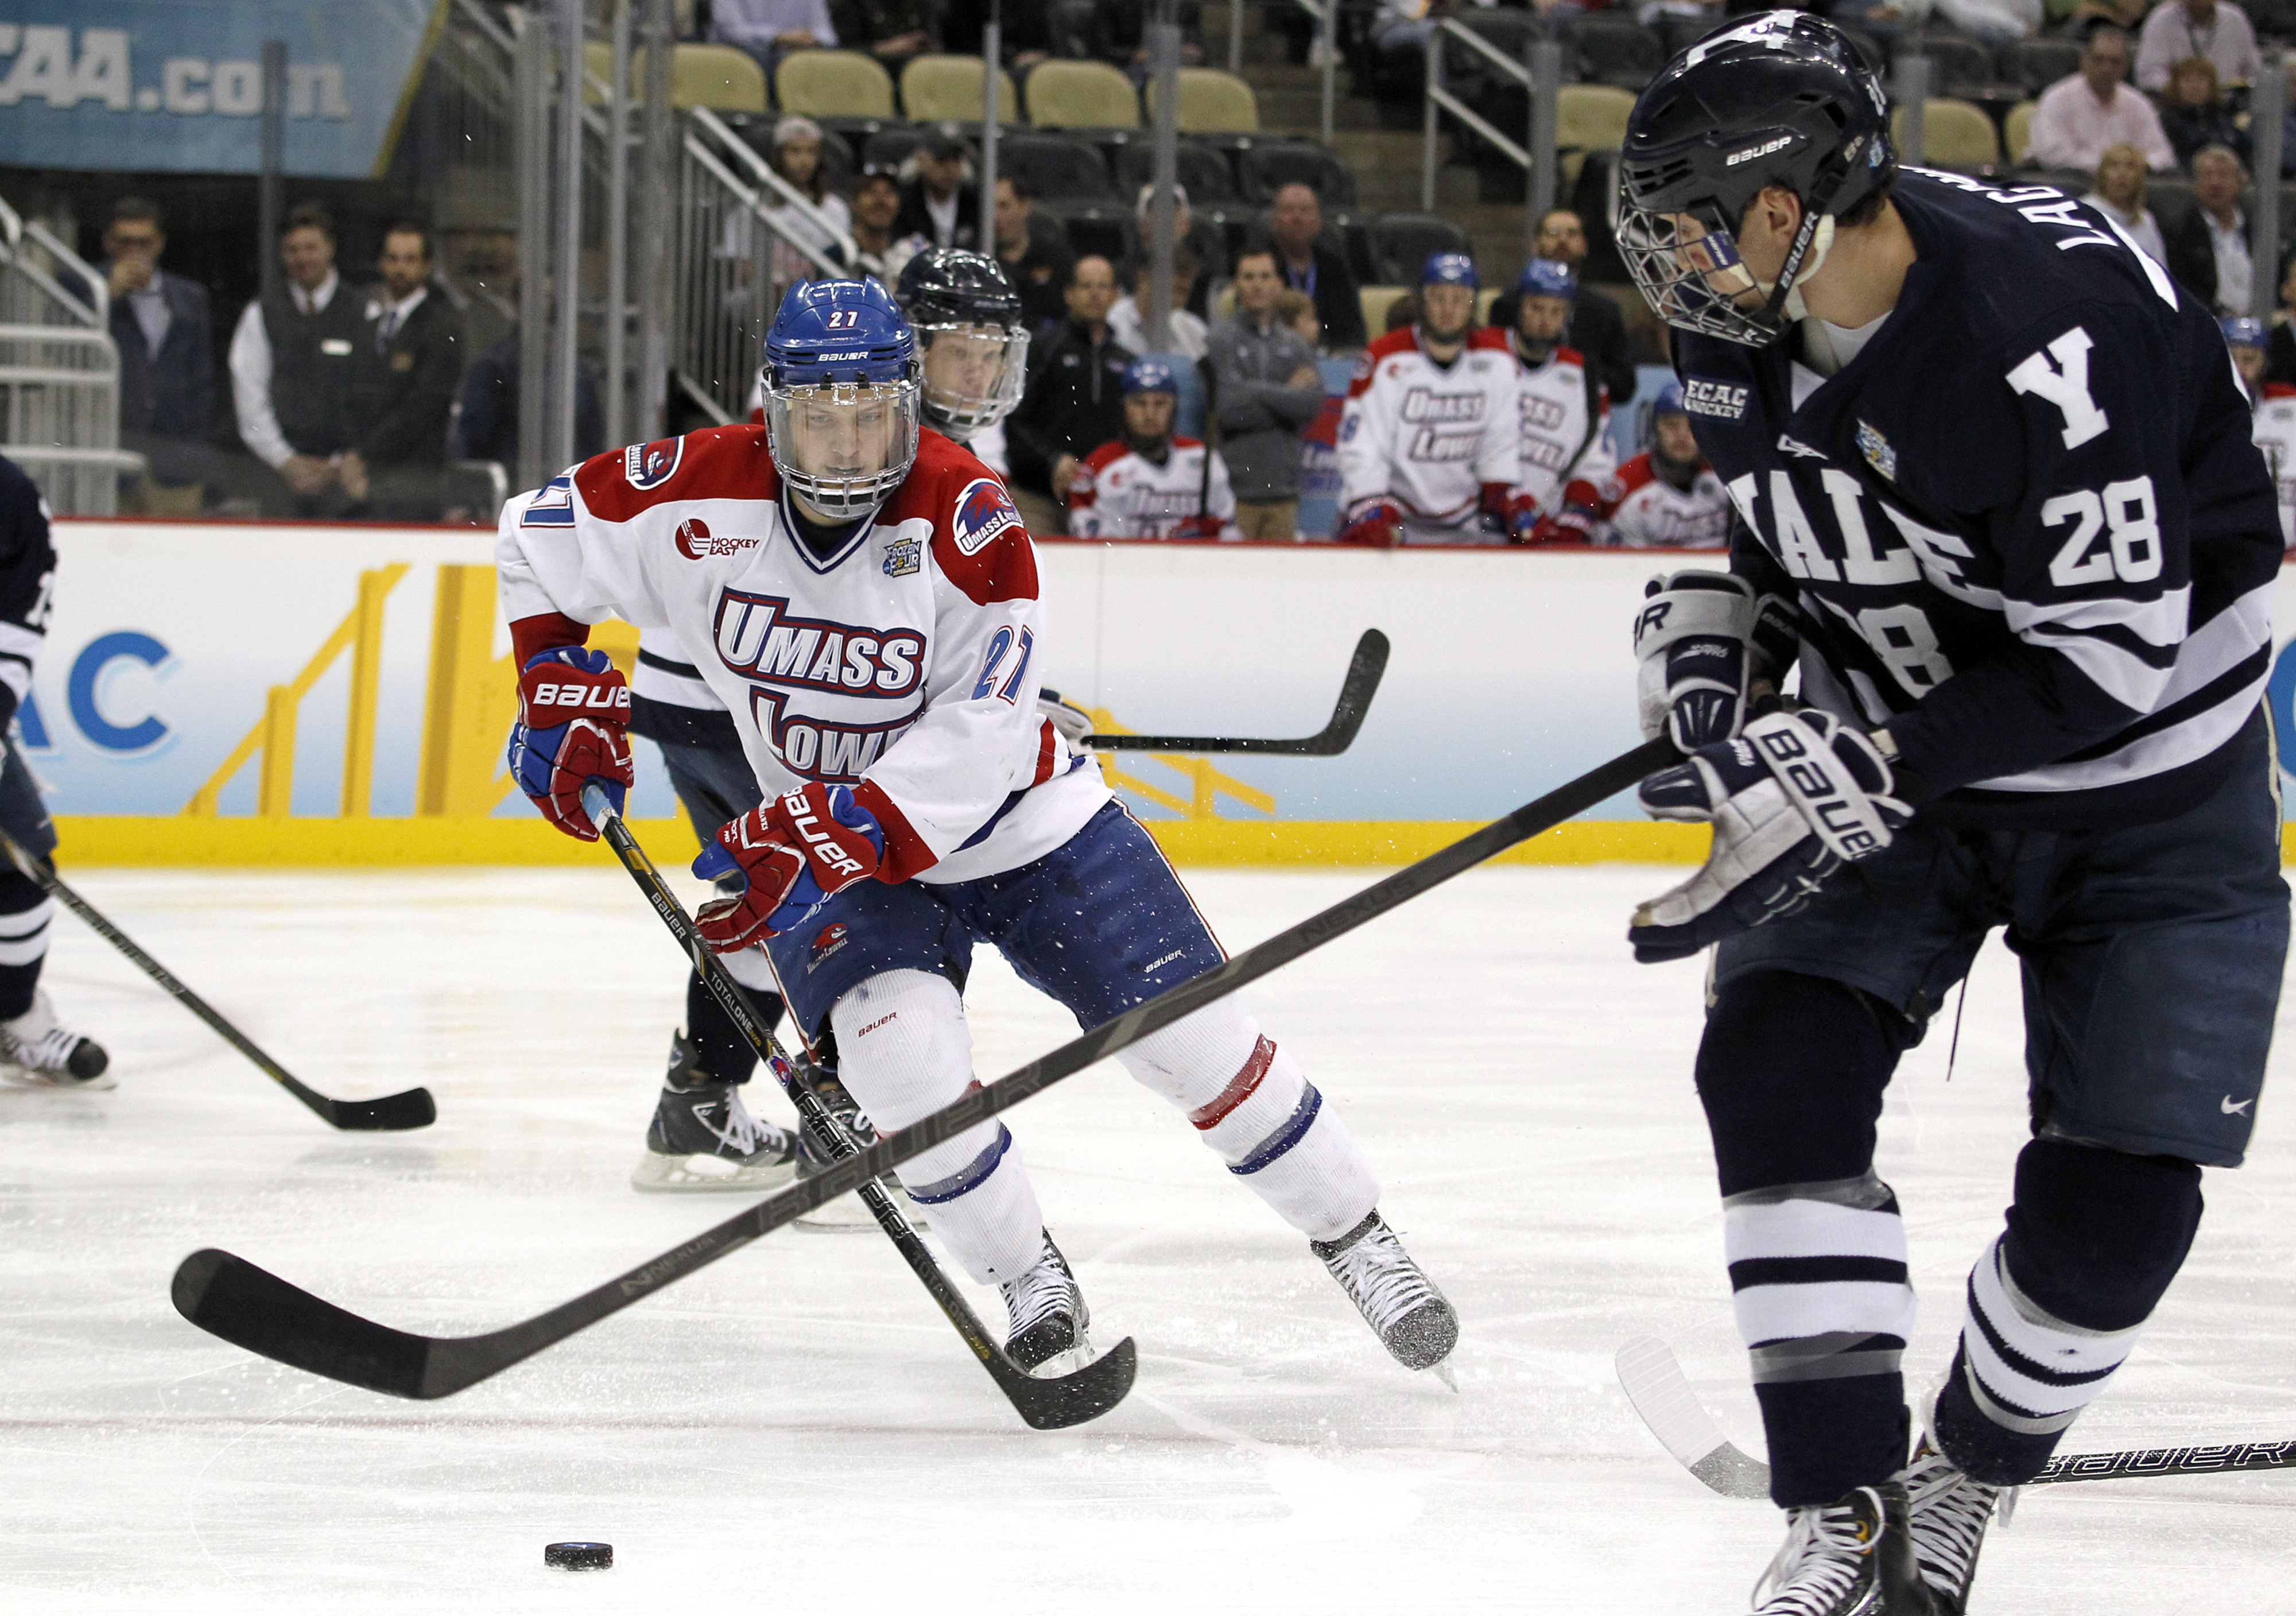 UMass Lowell defenseman Zack Kamrass had a goal and an assist in Friday's semifinal victory over Notre Dame.